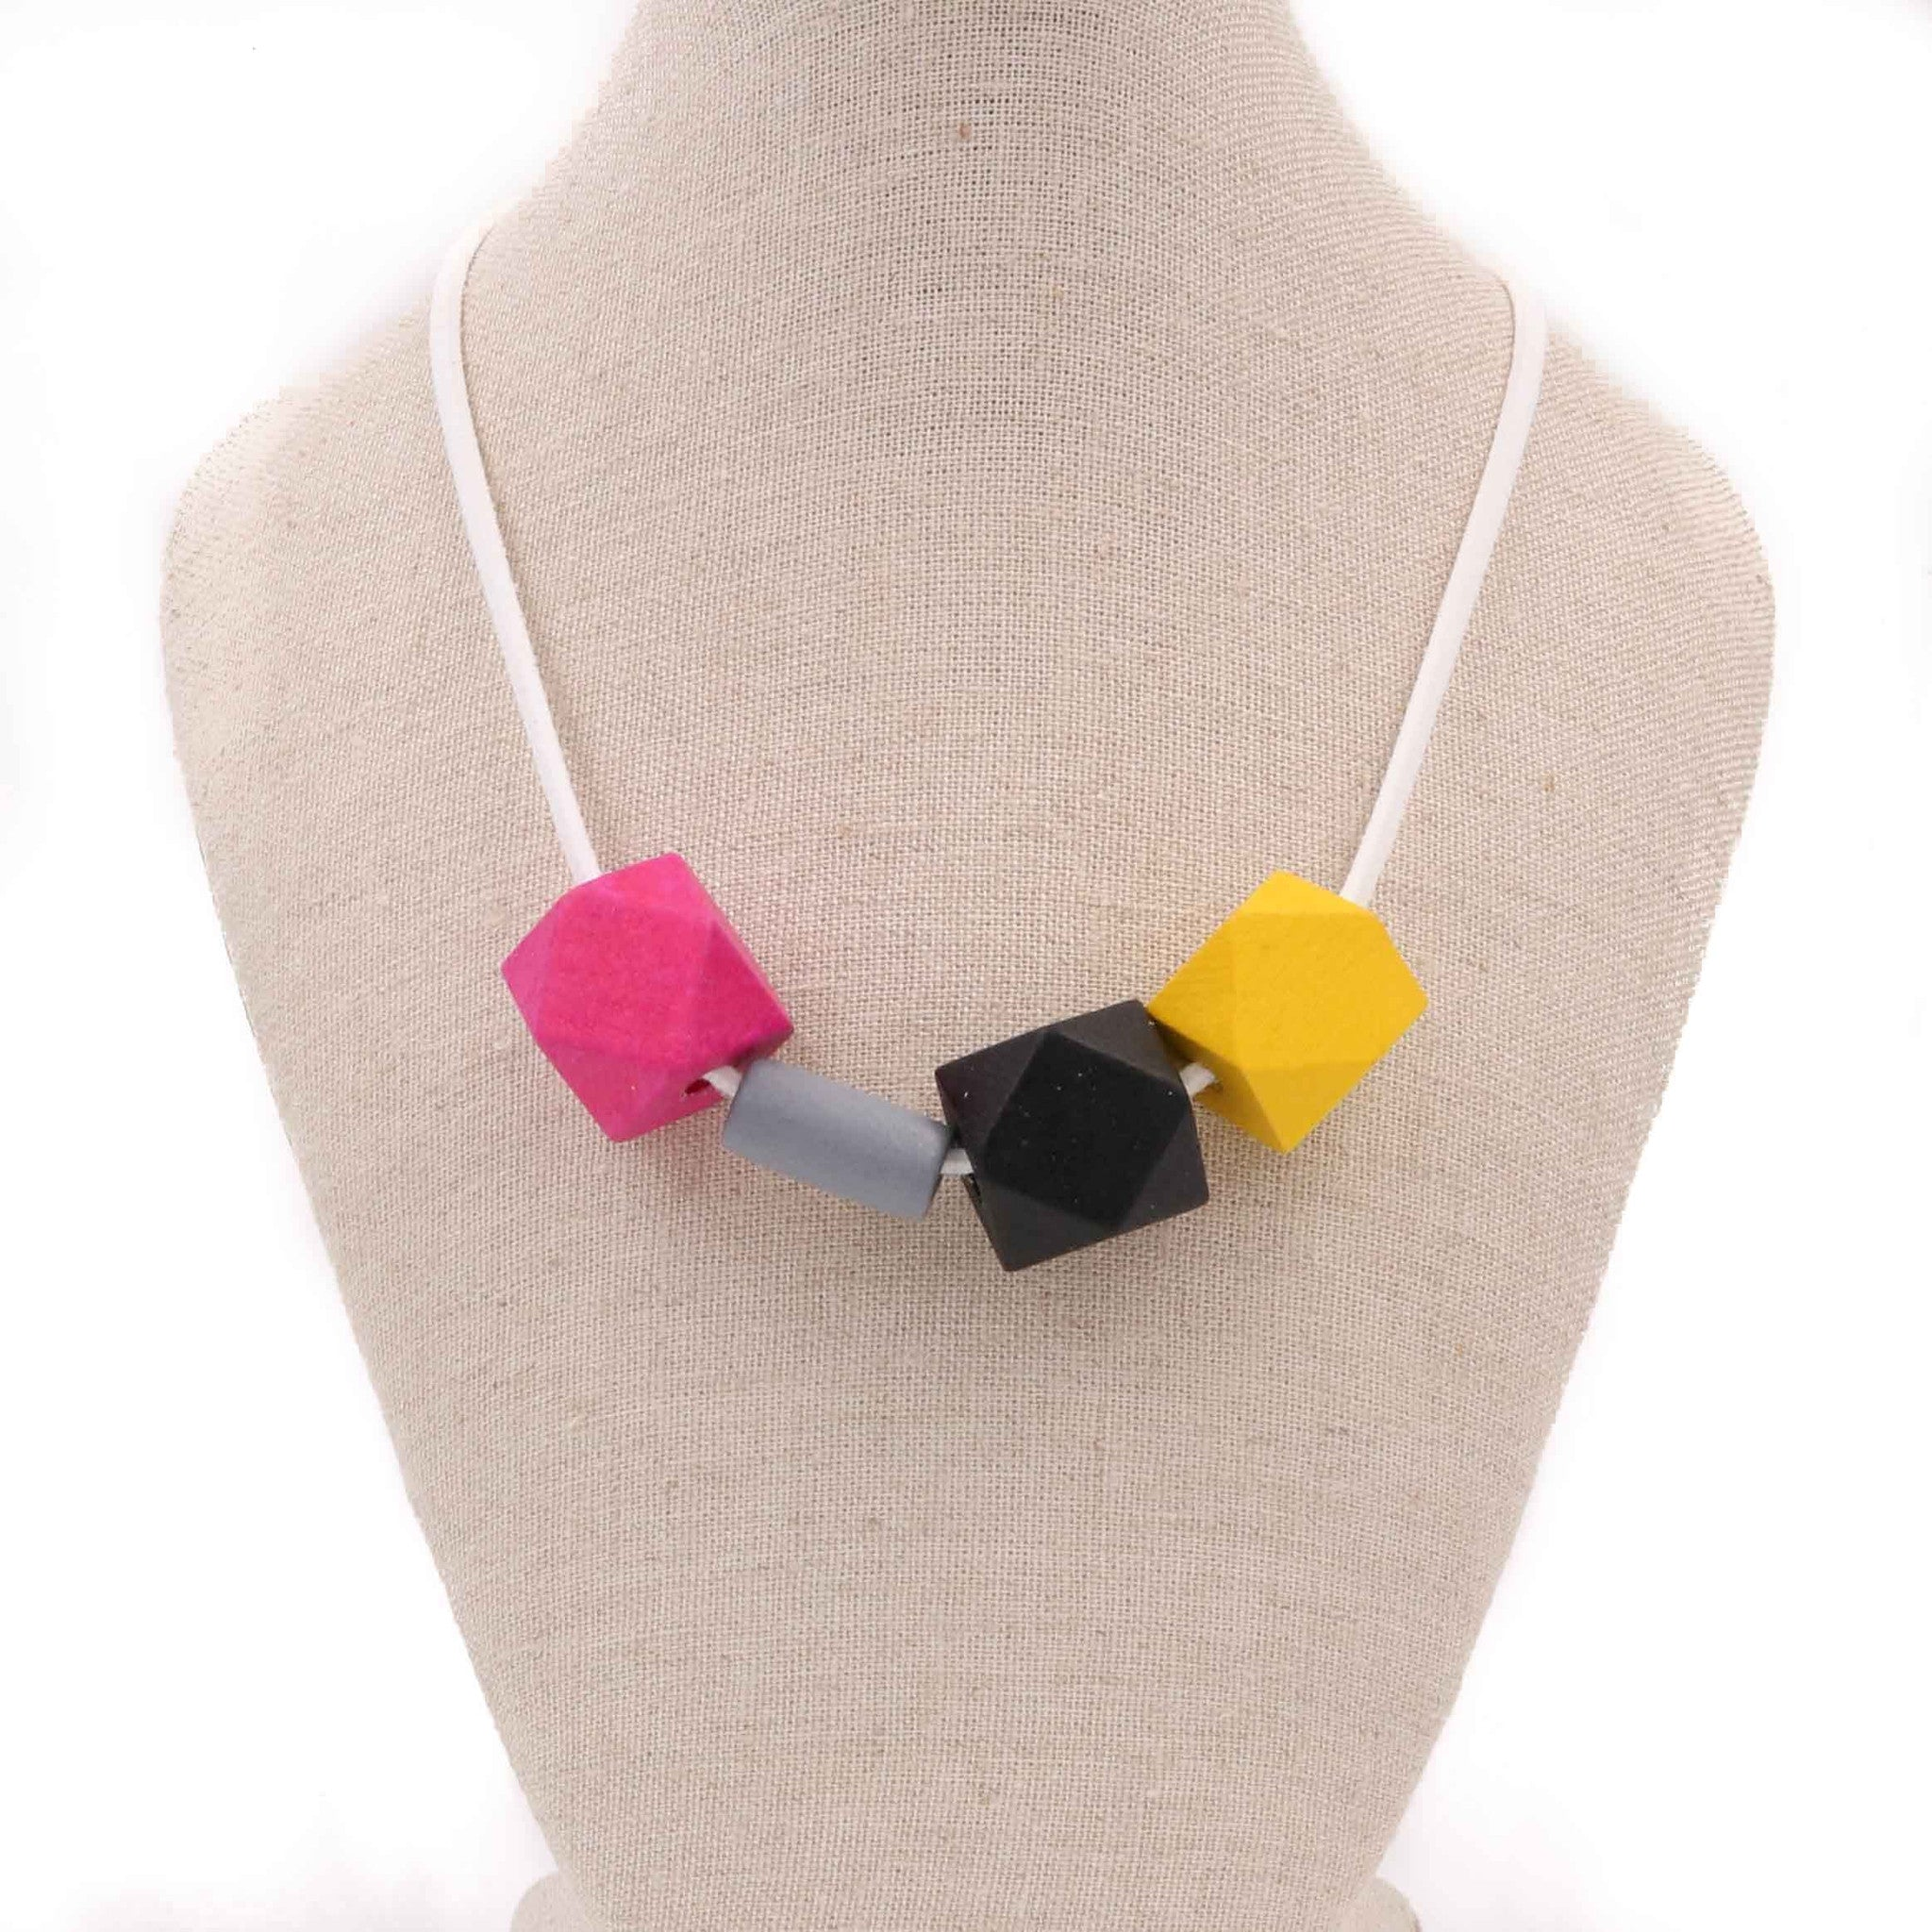 Handmade Colorpop Geometric Necklace (#06) - Restocked